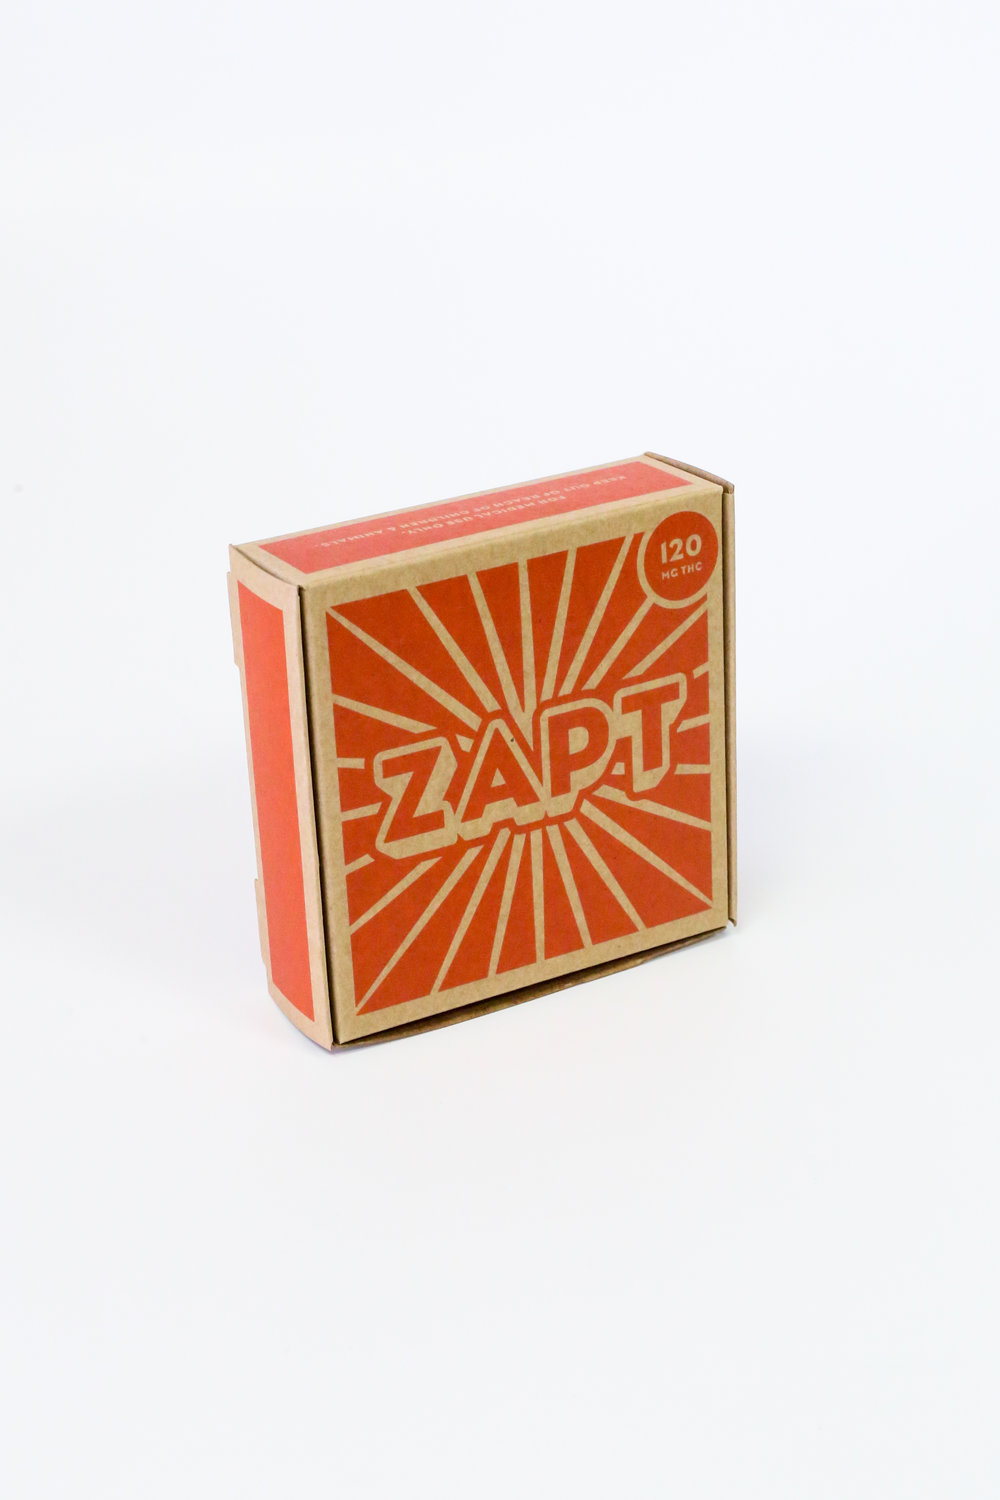 Zapt Edibles Cannabis Packaging